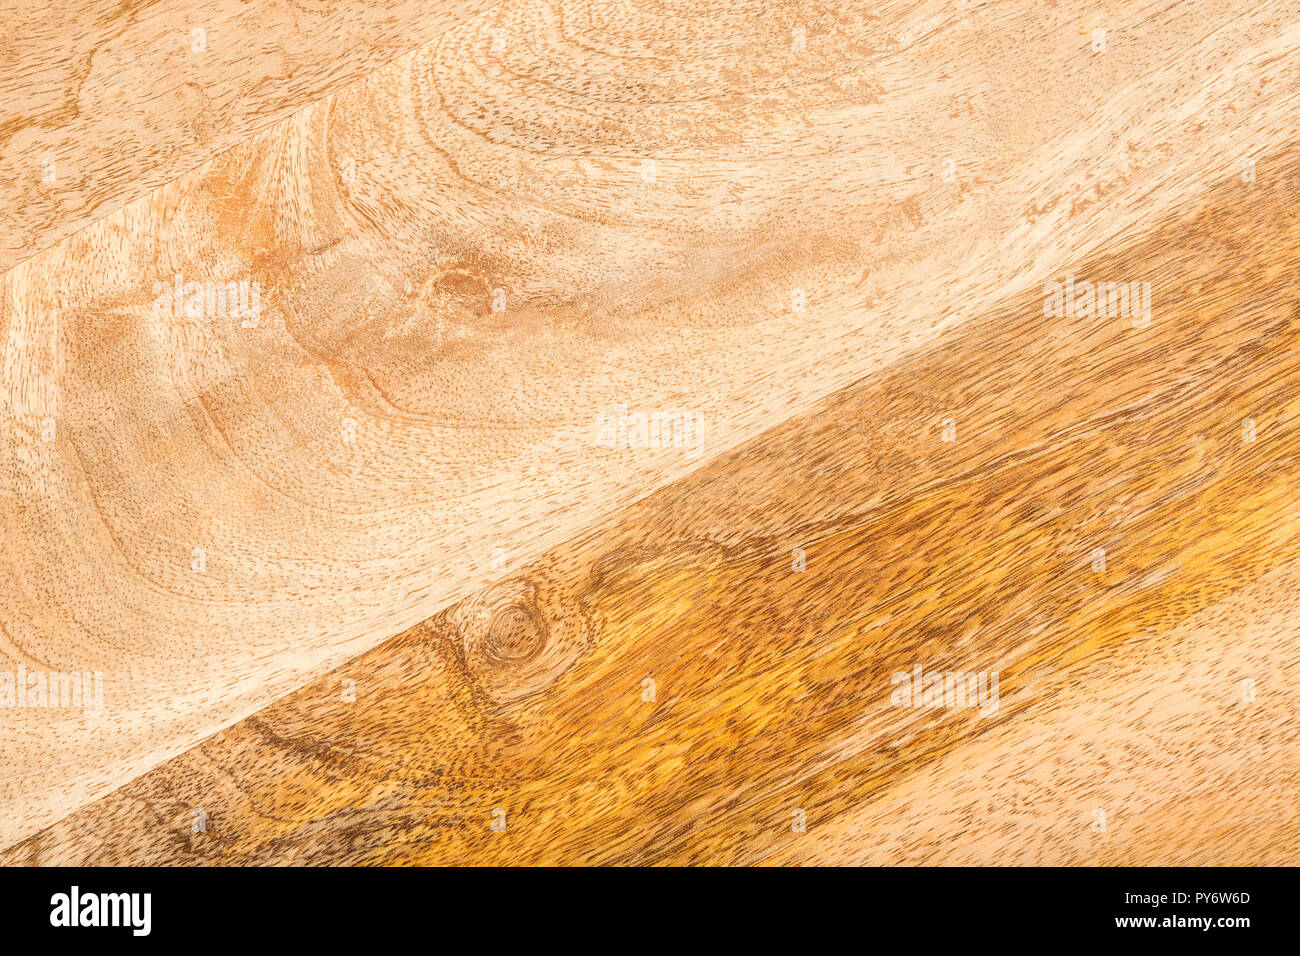 Beautiful natural warm wooden surface. Polished wood texture. - Stock Image